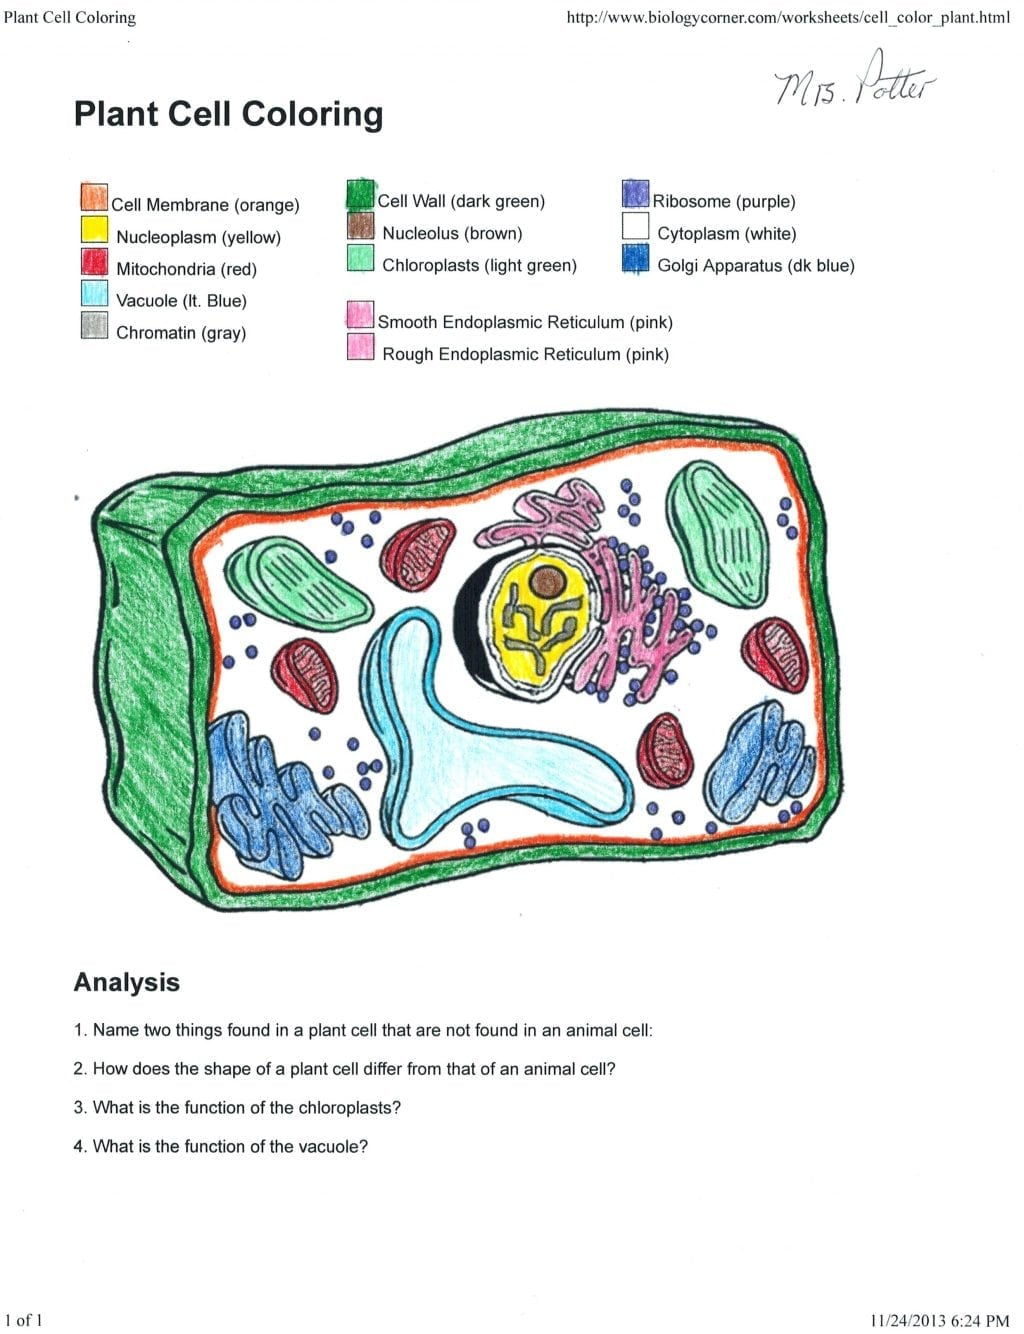 Biology Corner Plant Cell Coloring Page